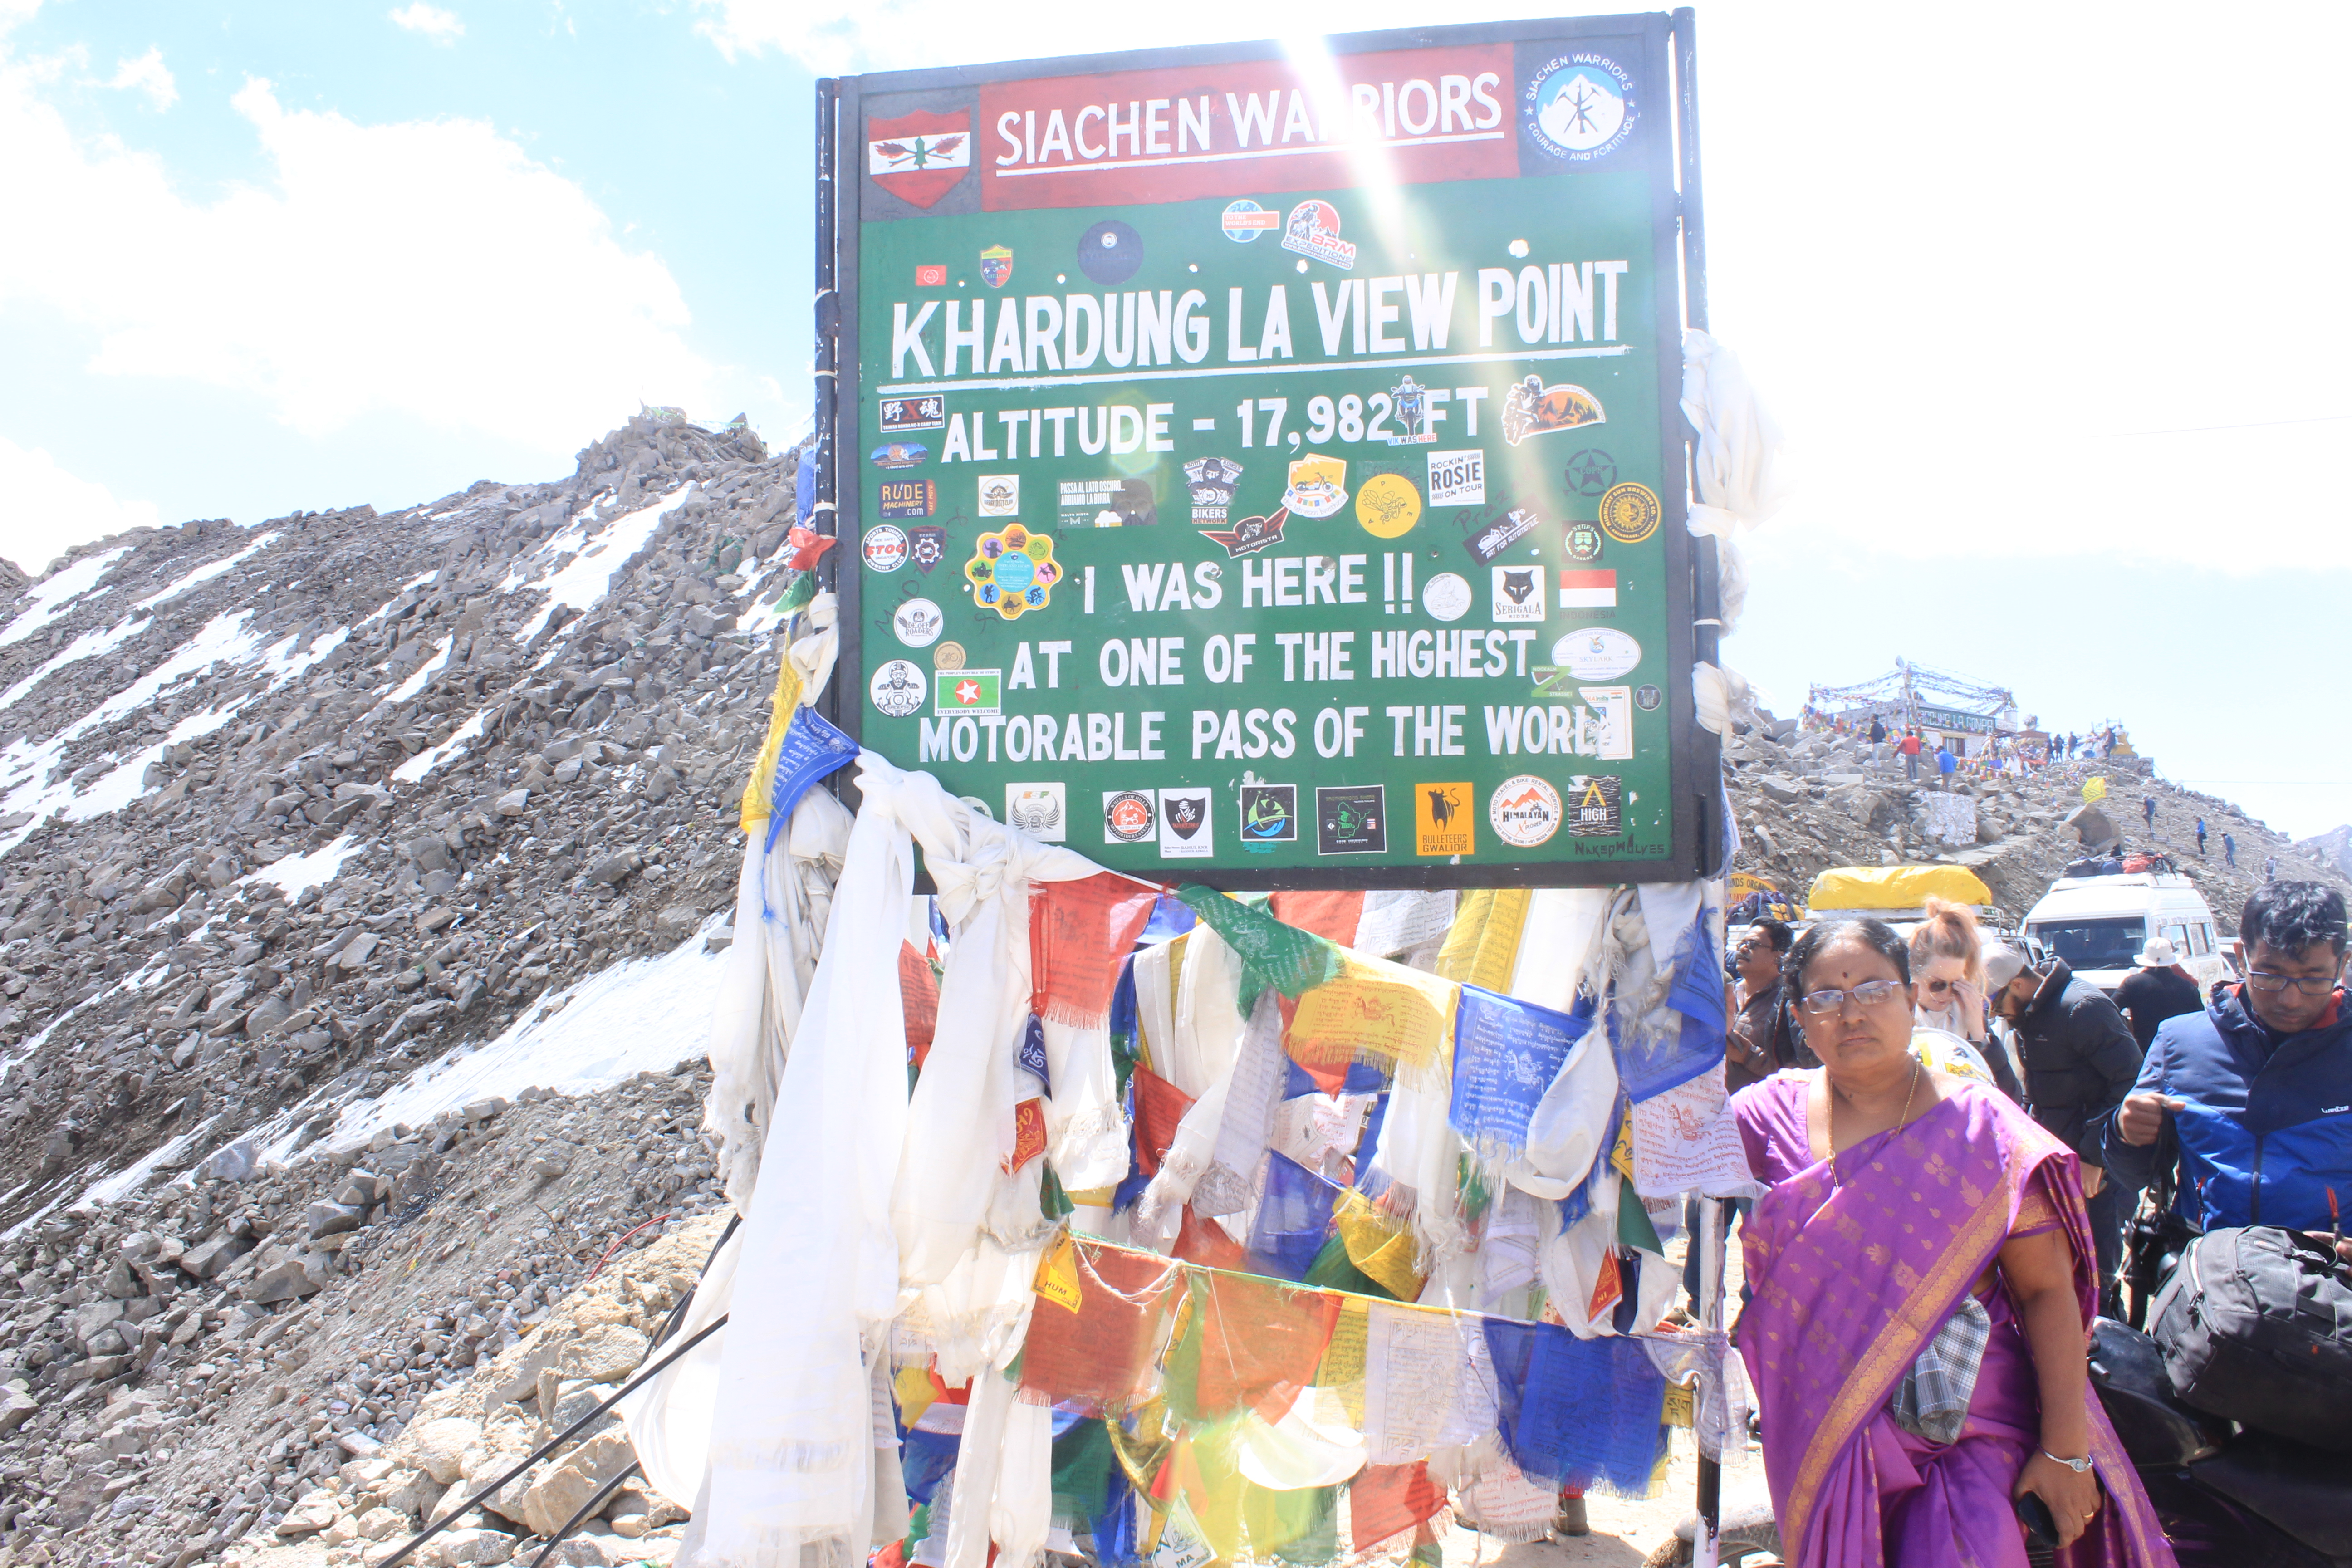 Board of Khardung La View Point